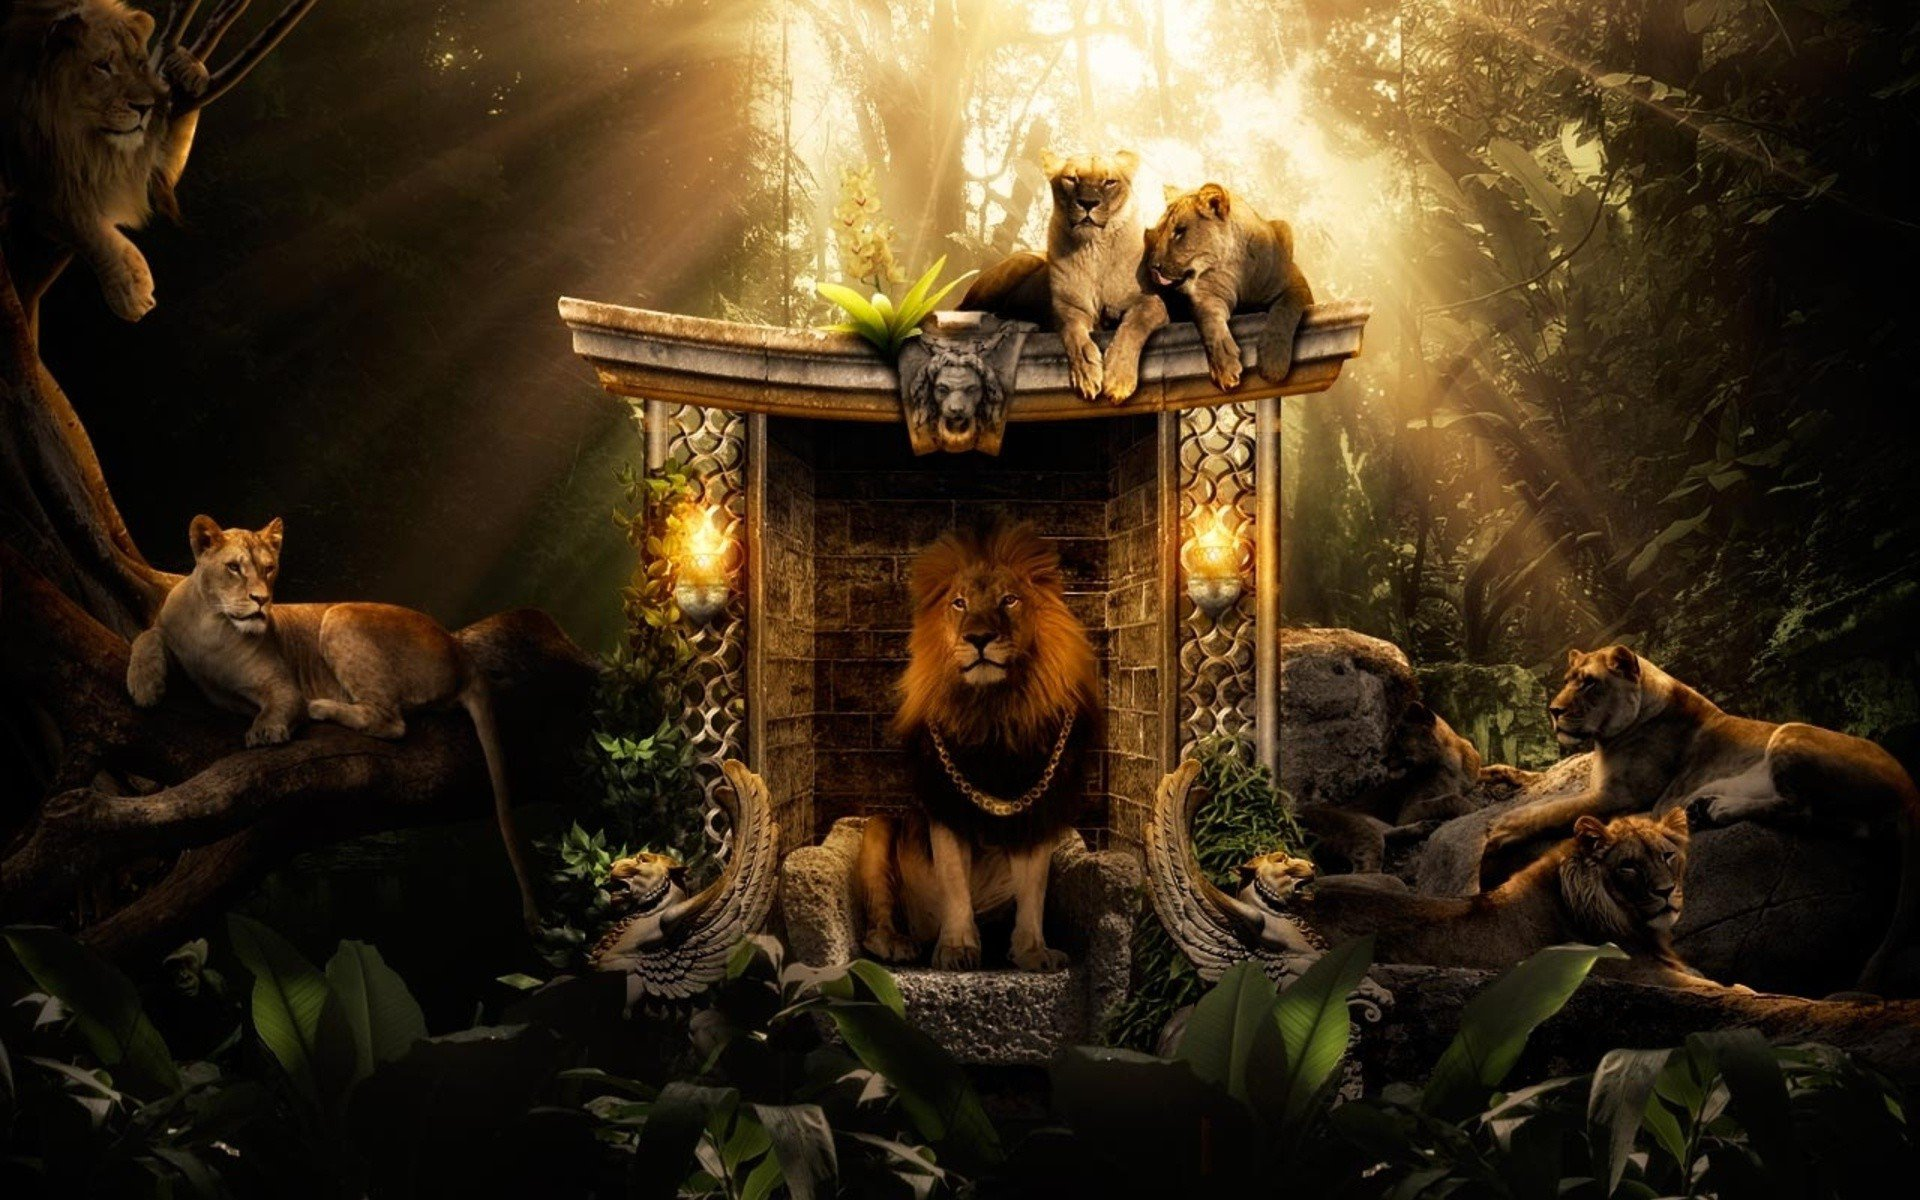 lions jungle  hd creative  4k wallpapers  images  backgrounds  photos and pictures